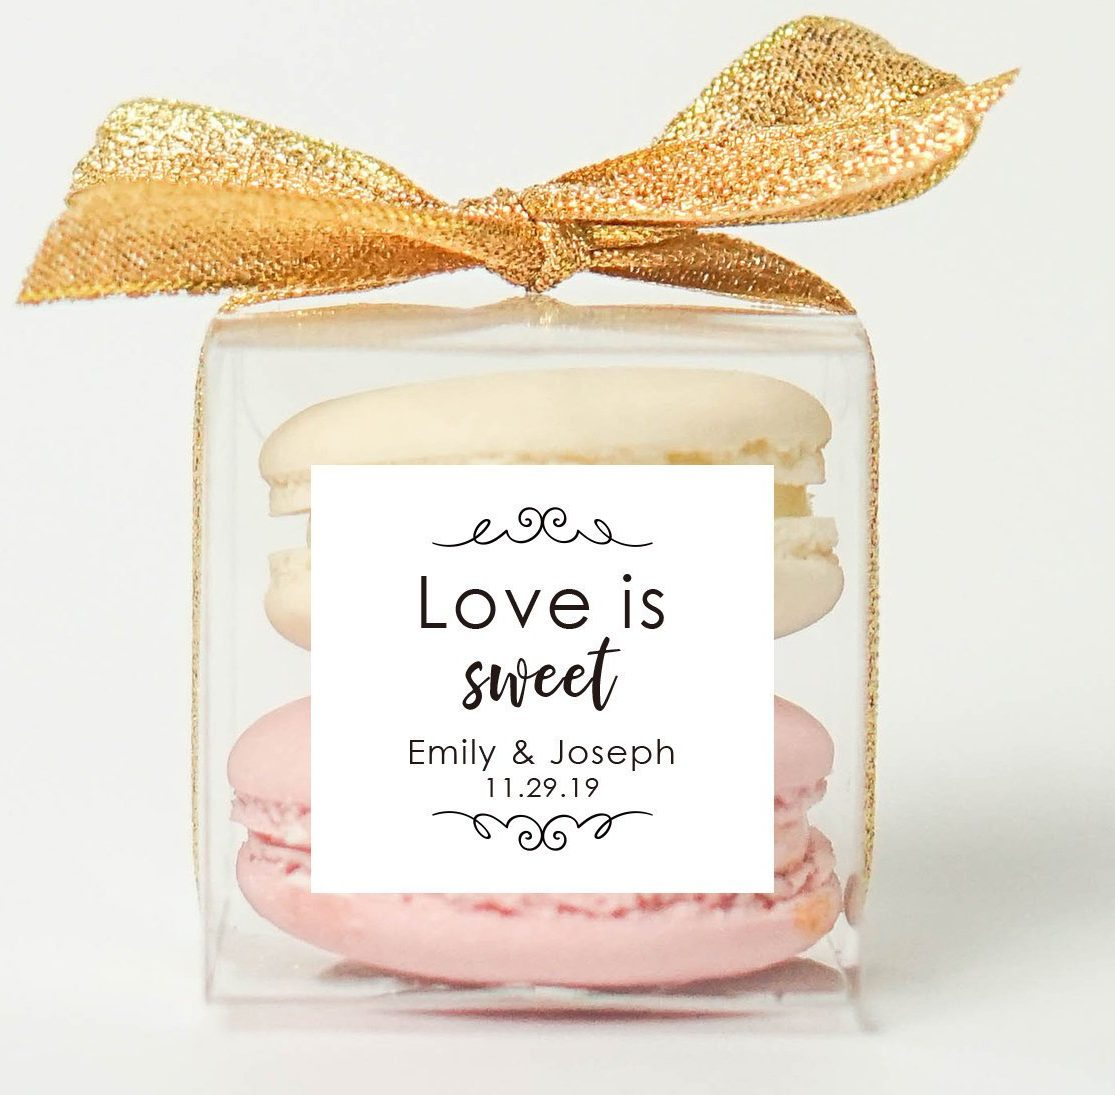 Ideas For Wedding Gifts: 10 Sets Of Wedding Clear Macaron Packaging, Macaron